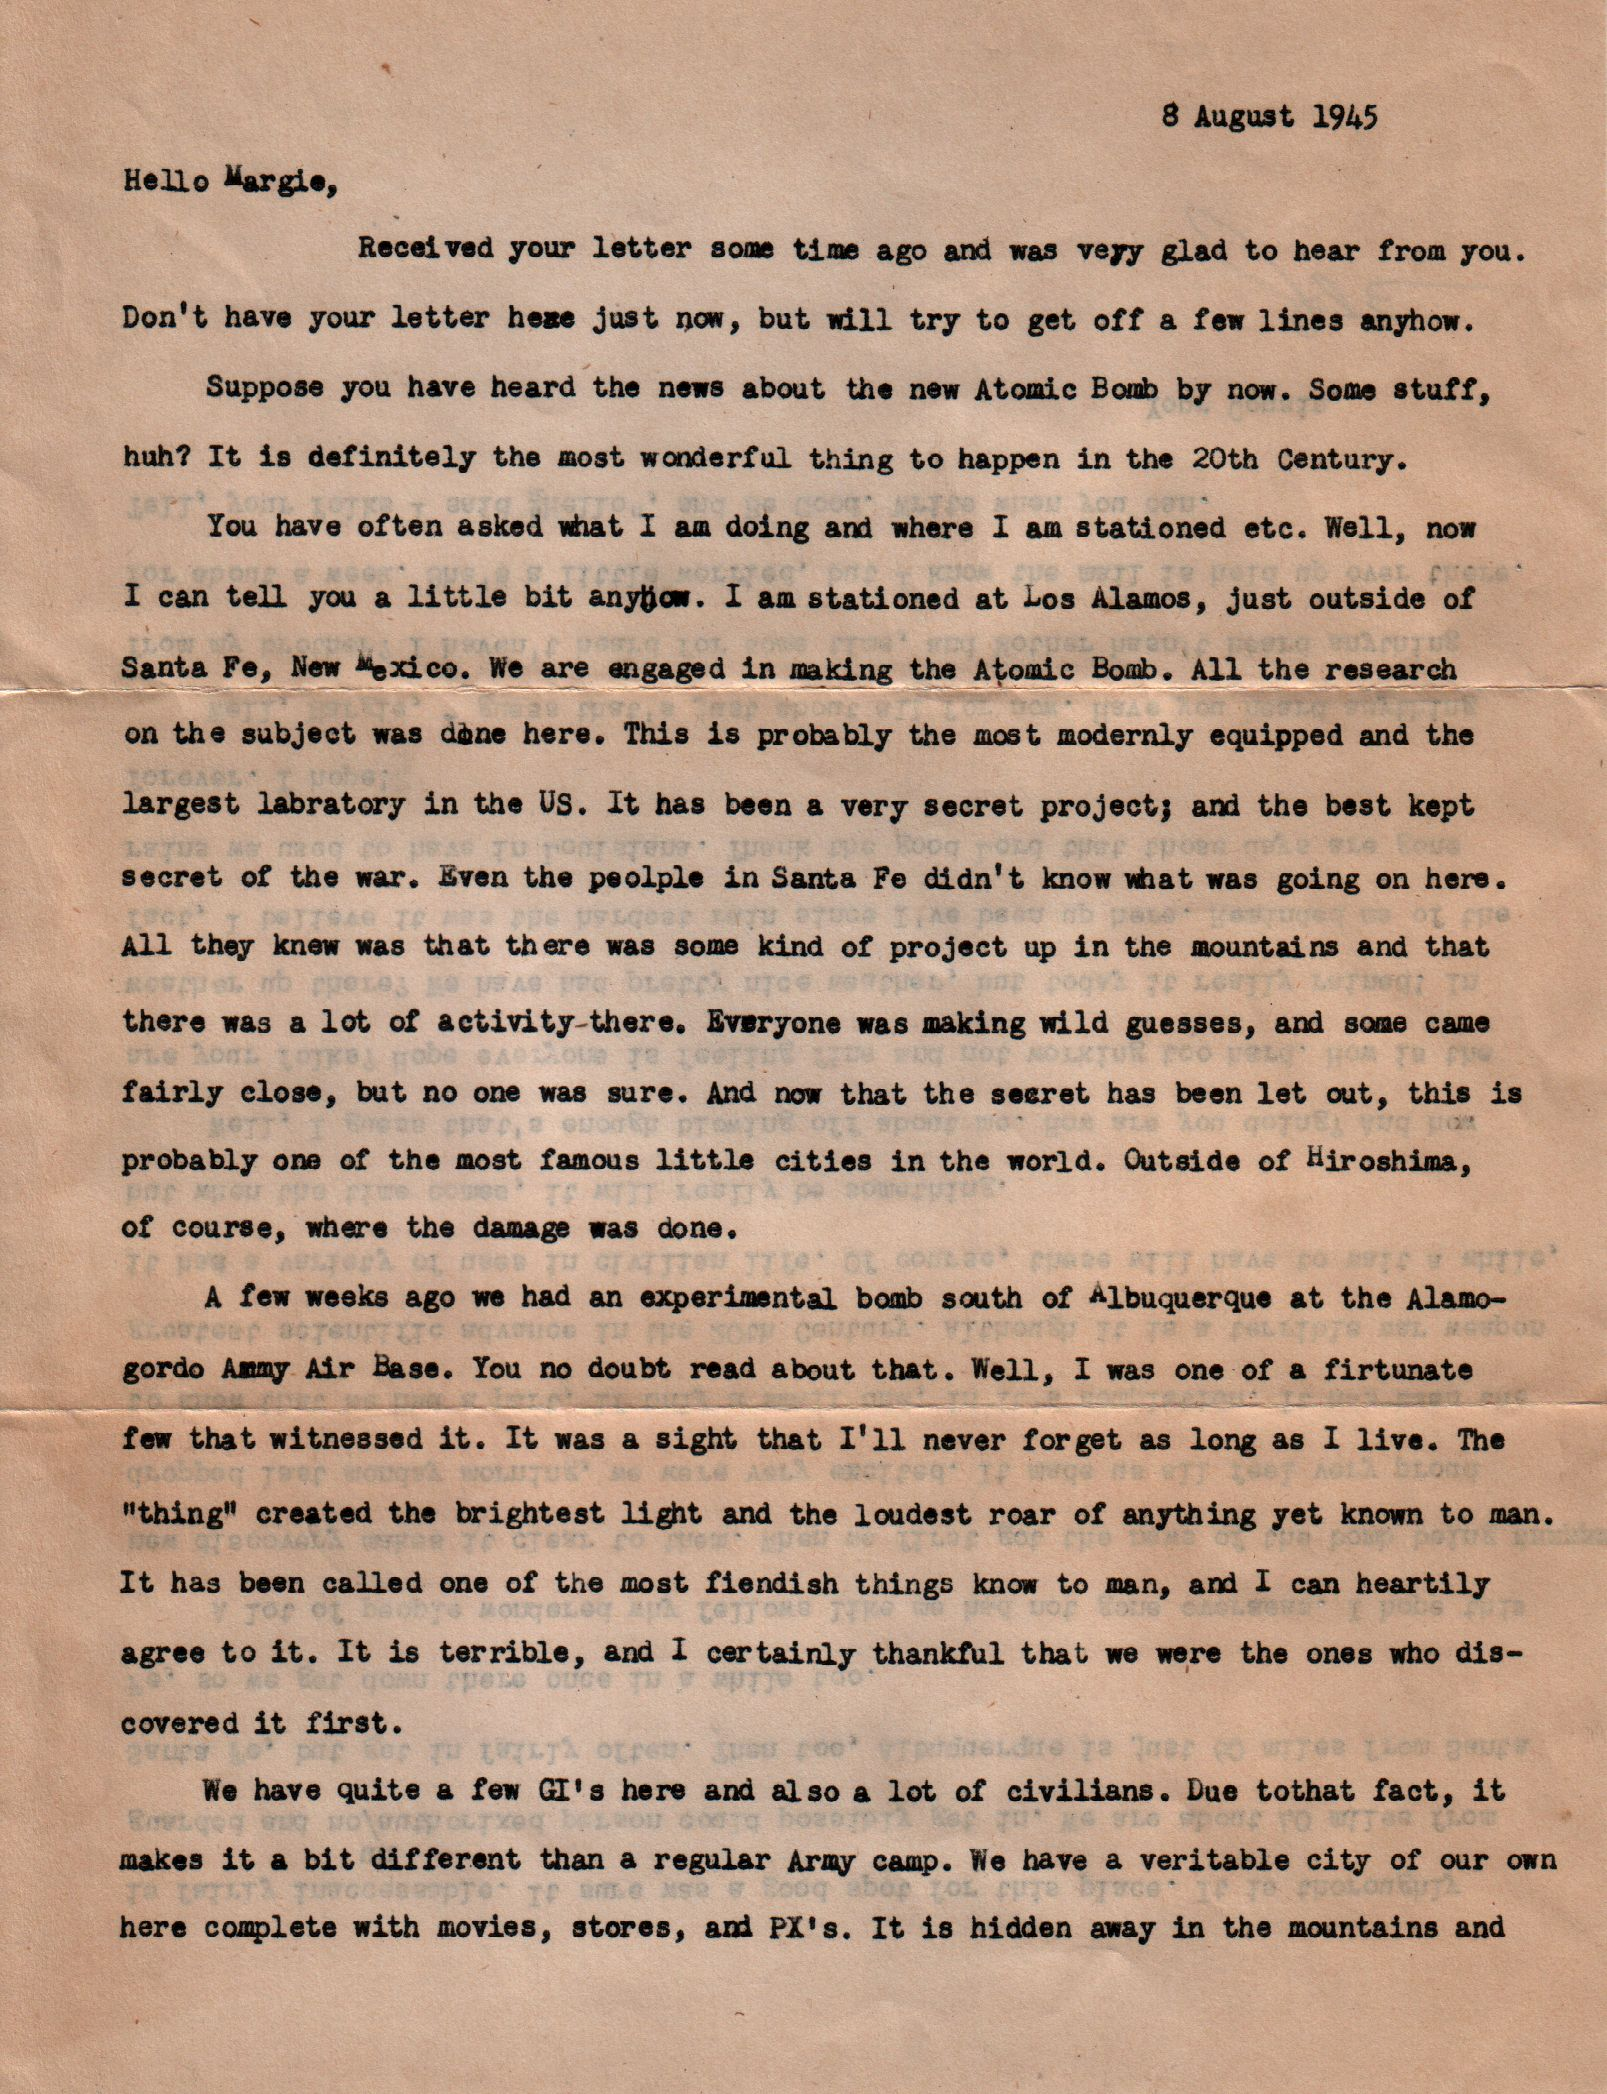 World War Two Letters - 9 August 1945 1